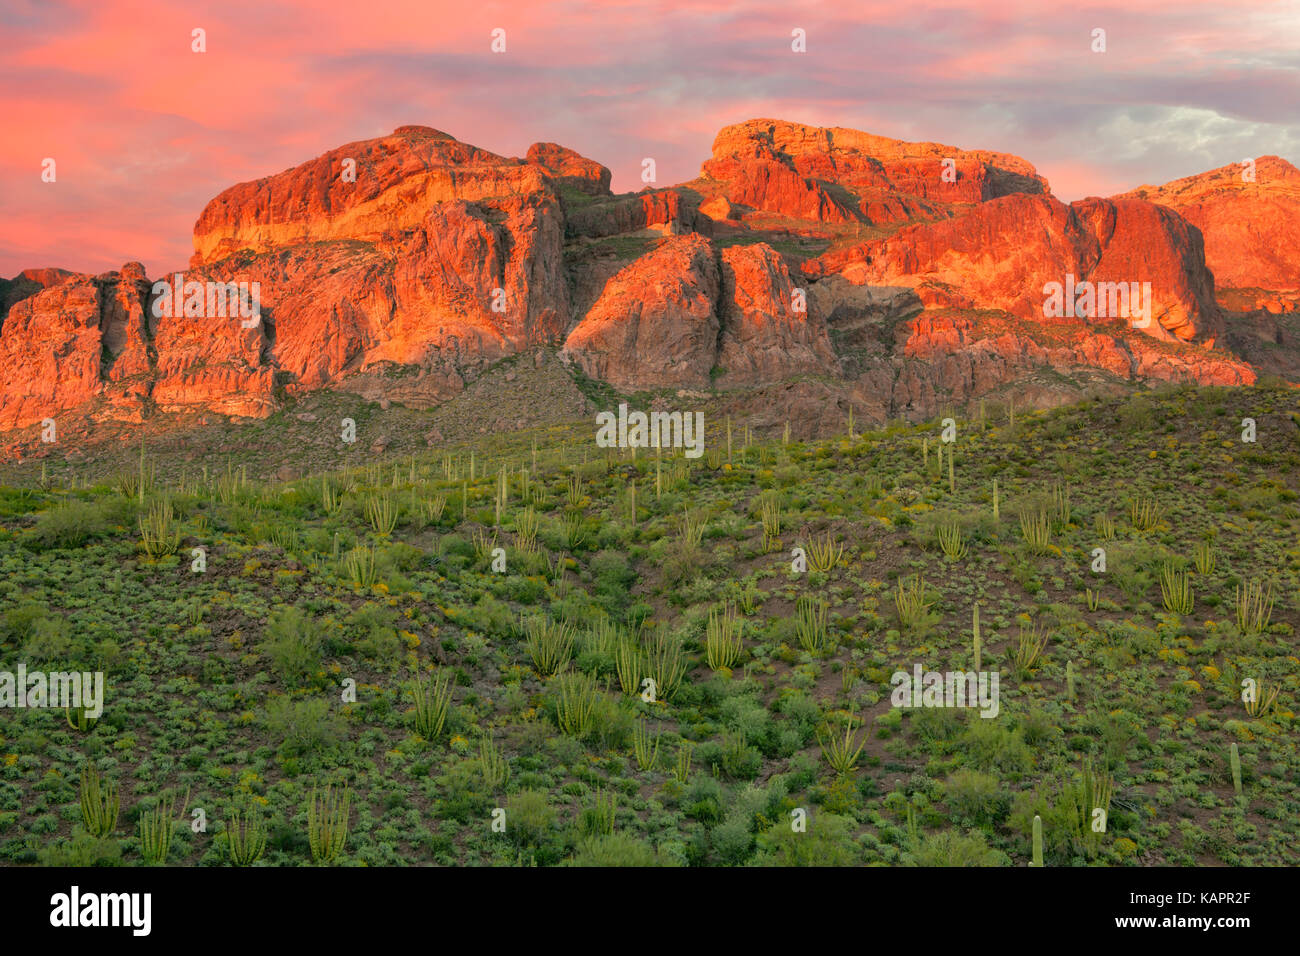 Evening light in Arizona's Organ Pipe Cactus National Monument. - Stock Image